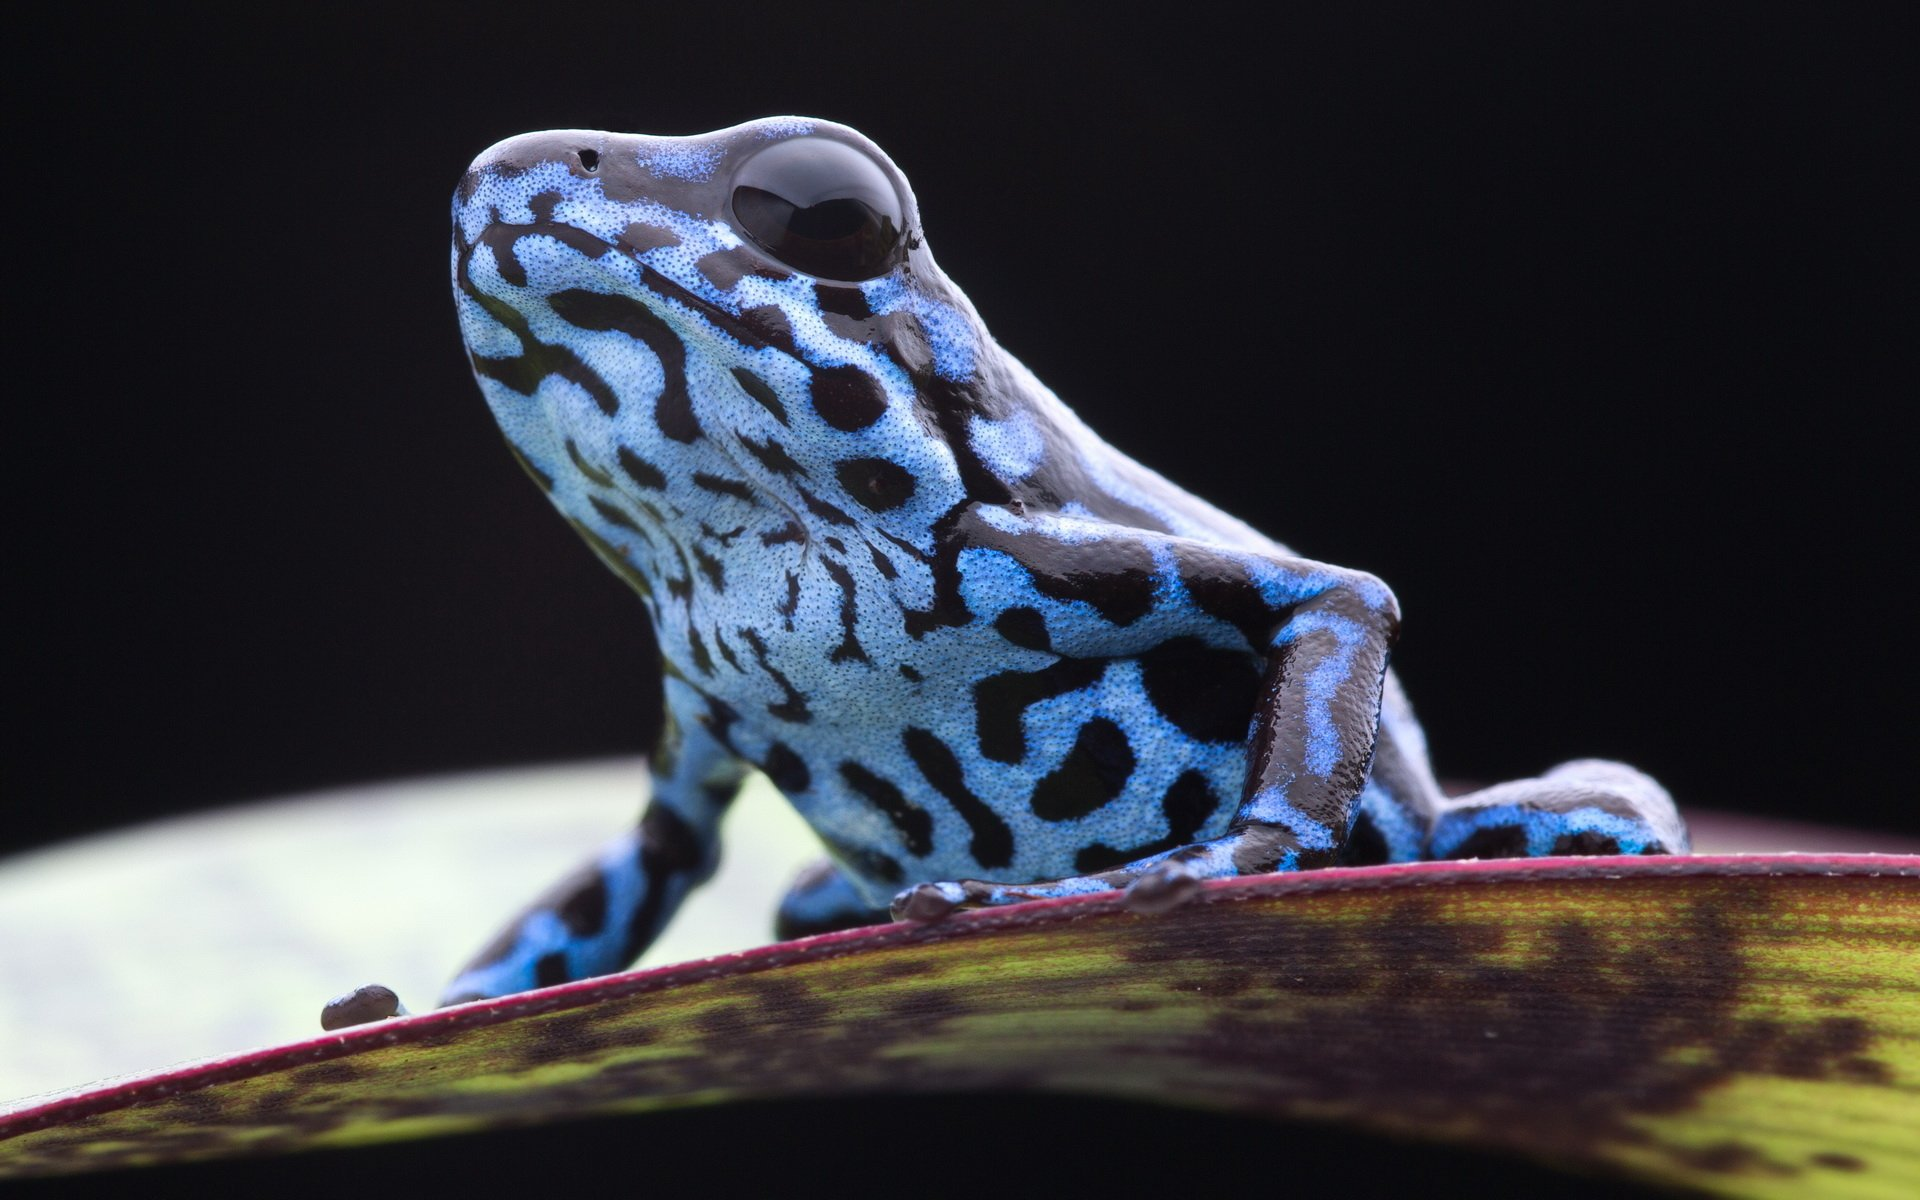 Animal - Poison dart frog  Frog Wallpaper